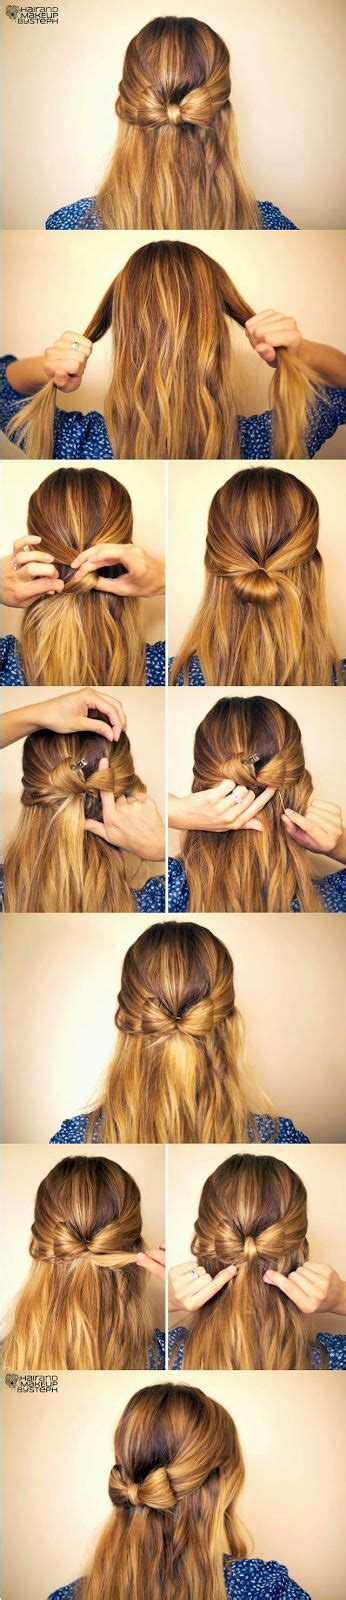 quick and easy hairstyles step by step diy hair tutorails 5 simple but cute and quick